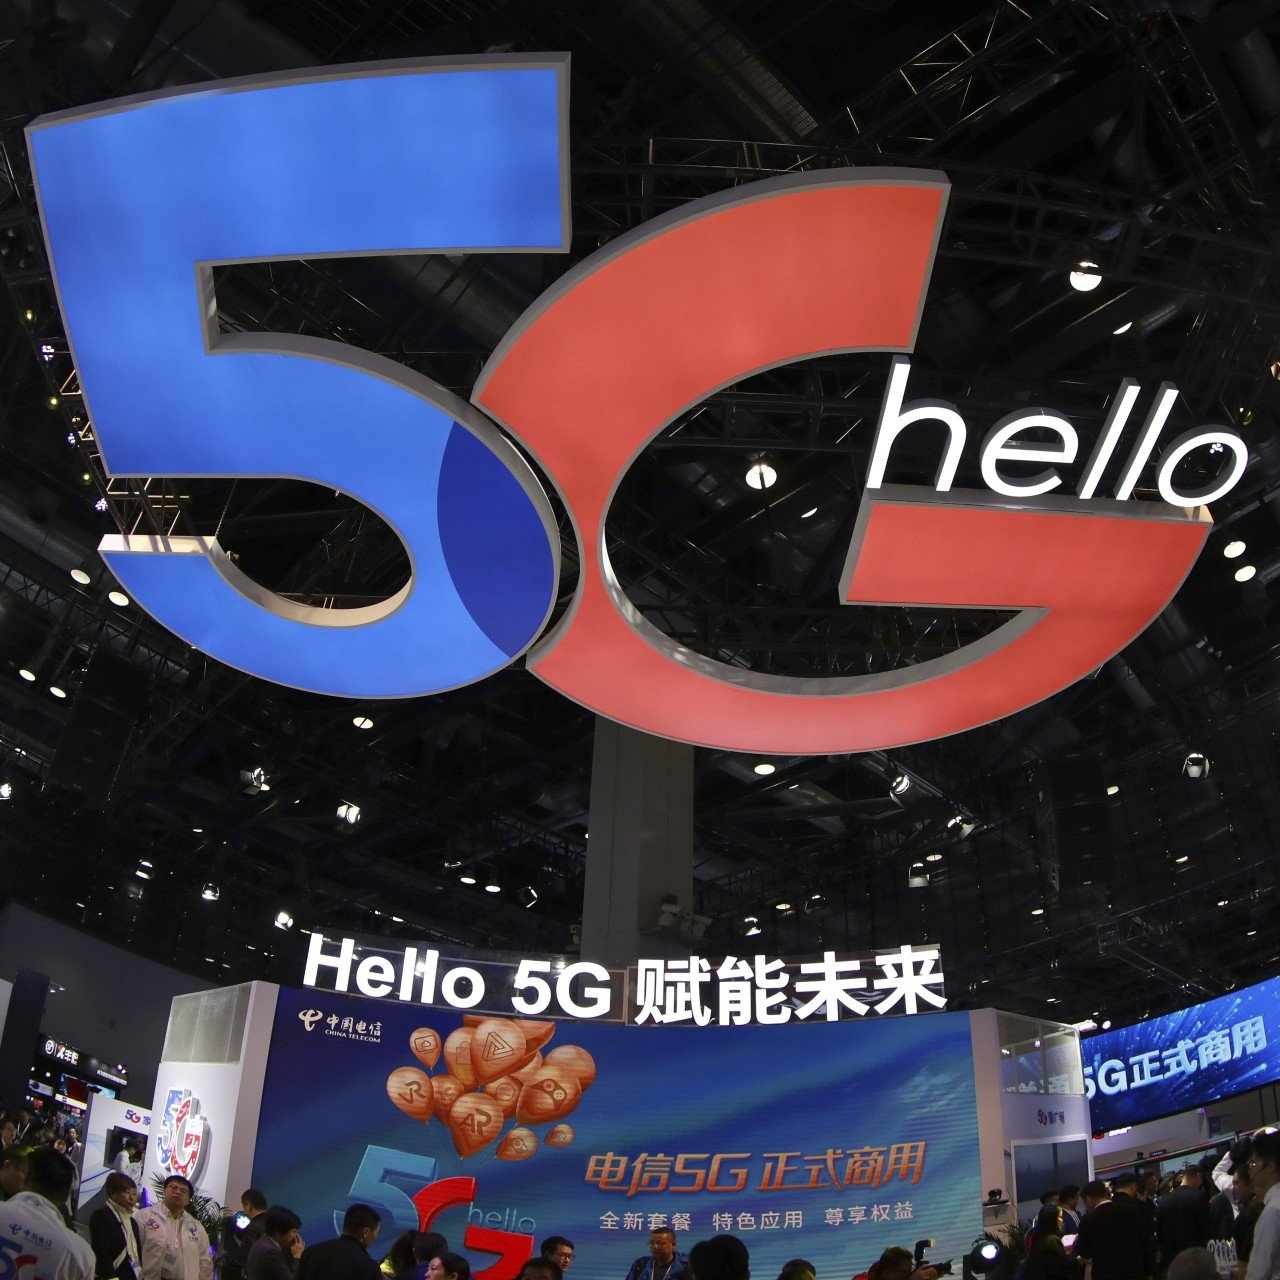 5G now available to users in China.